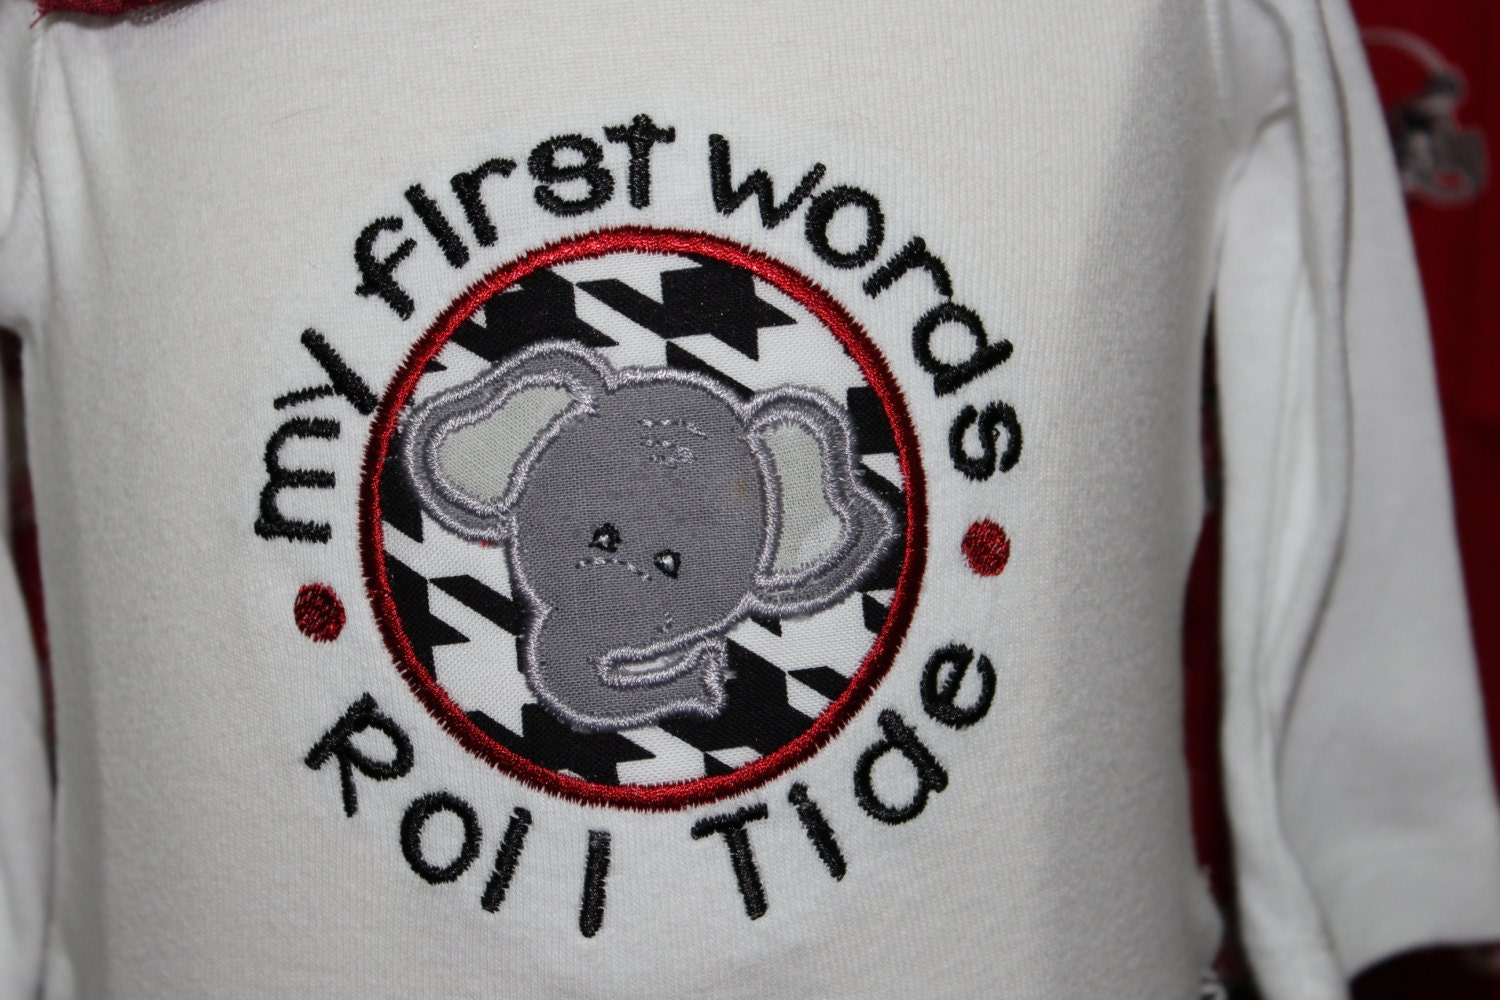 Alabama baby girl Roll Tide Crimson Tide elephant